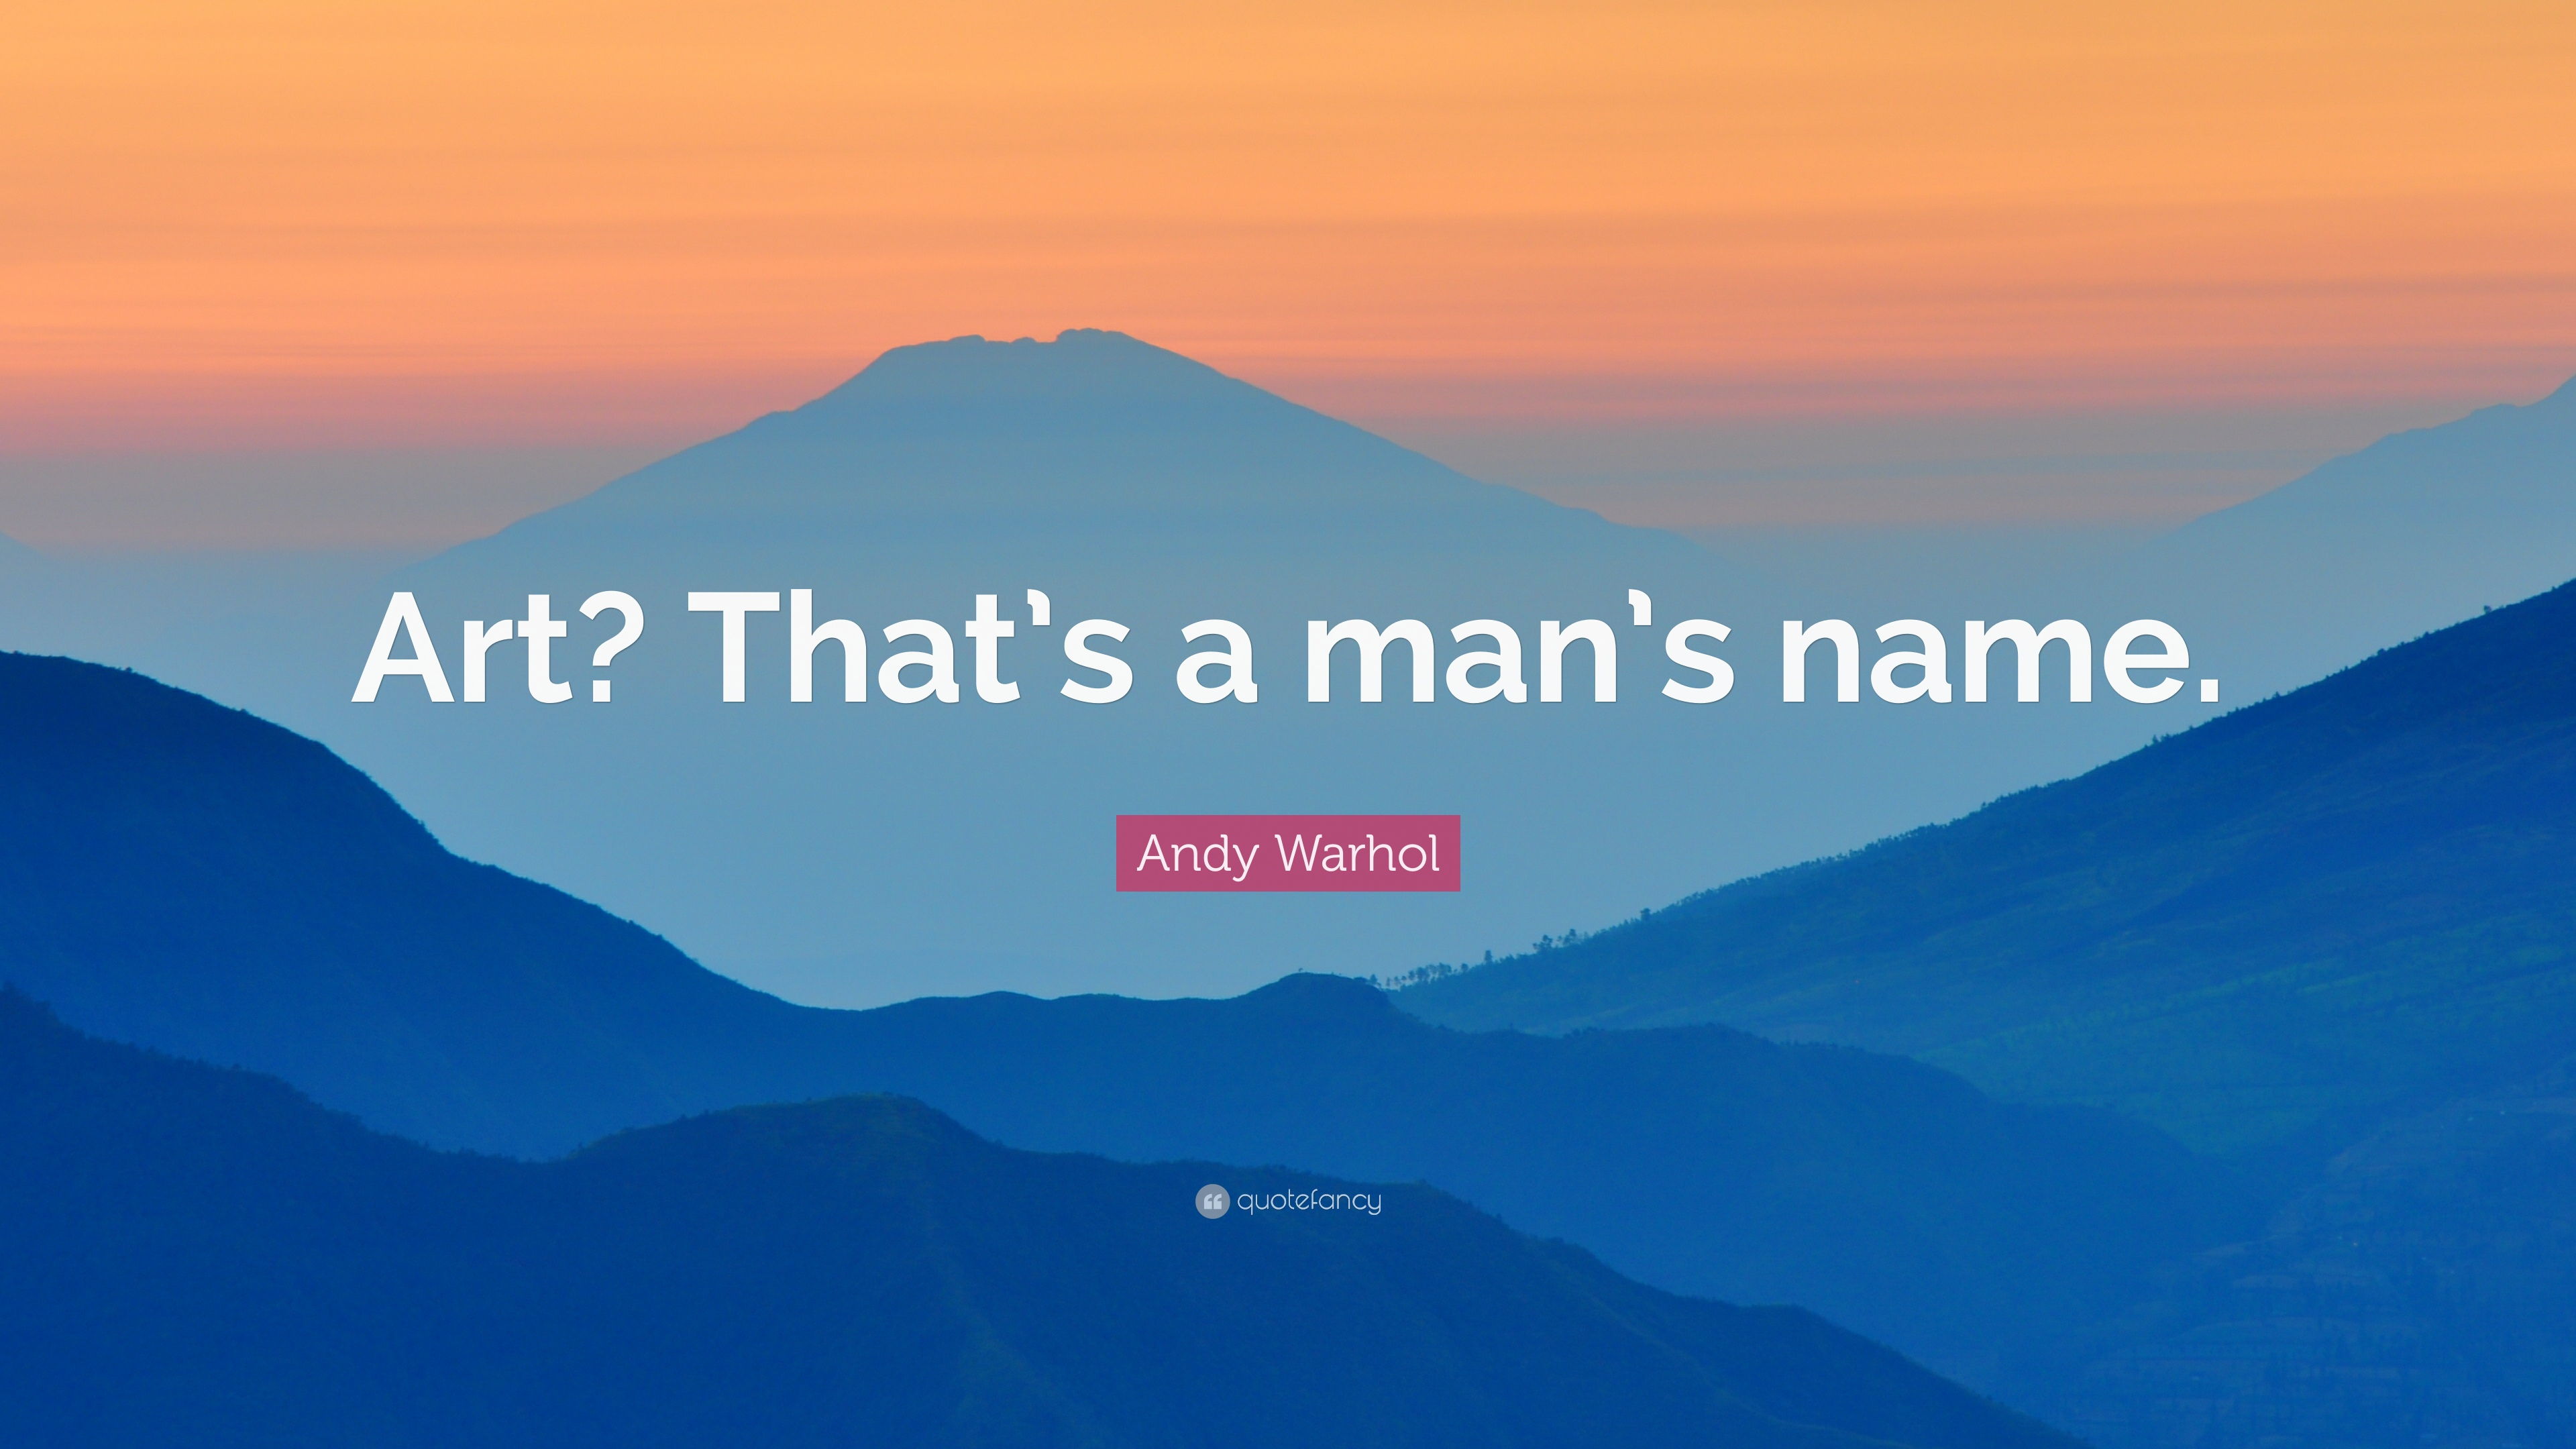 Andy warhol quote art thats a mans name 10 wallpapers andy warhol quote art thats a mans name voltagebd Image collections